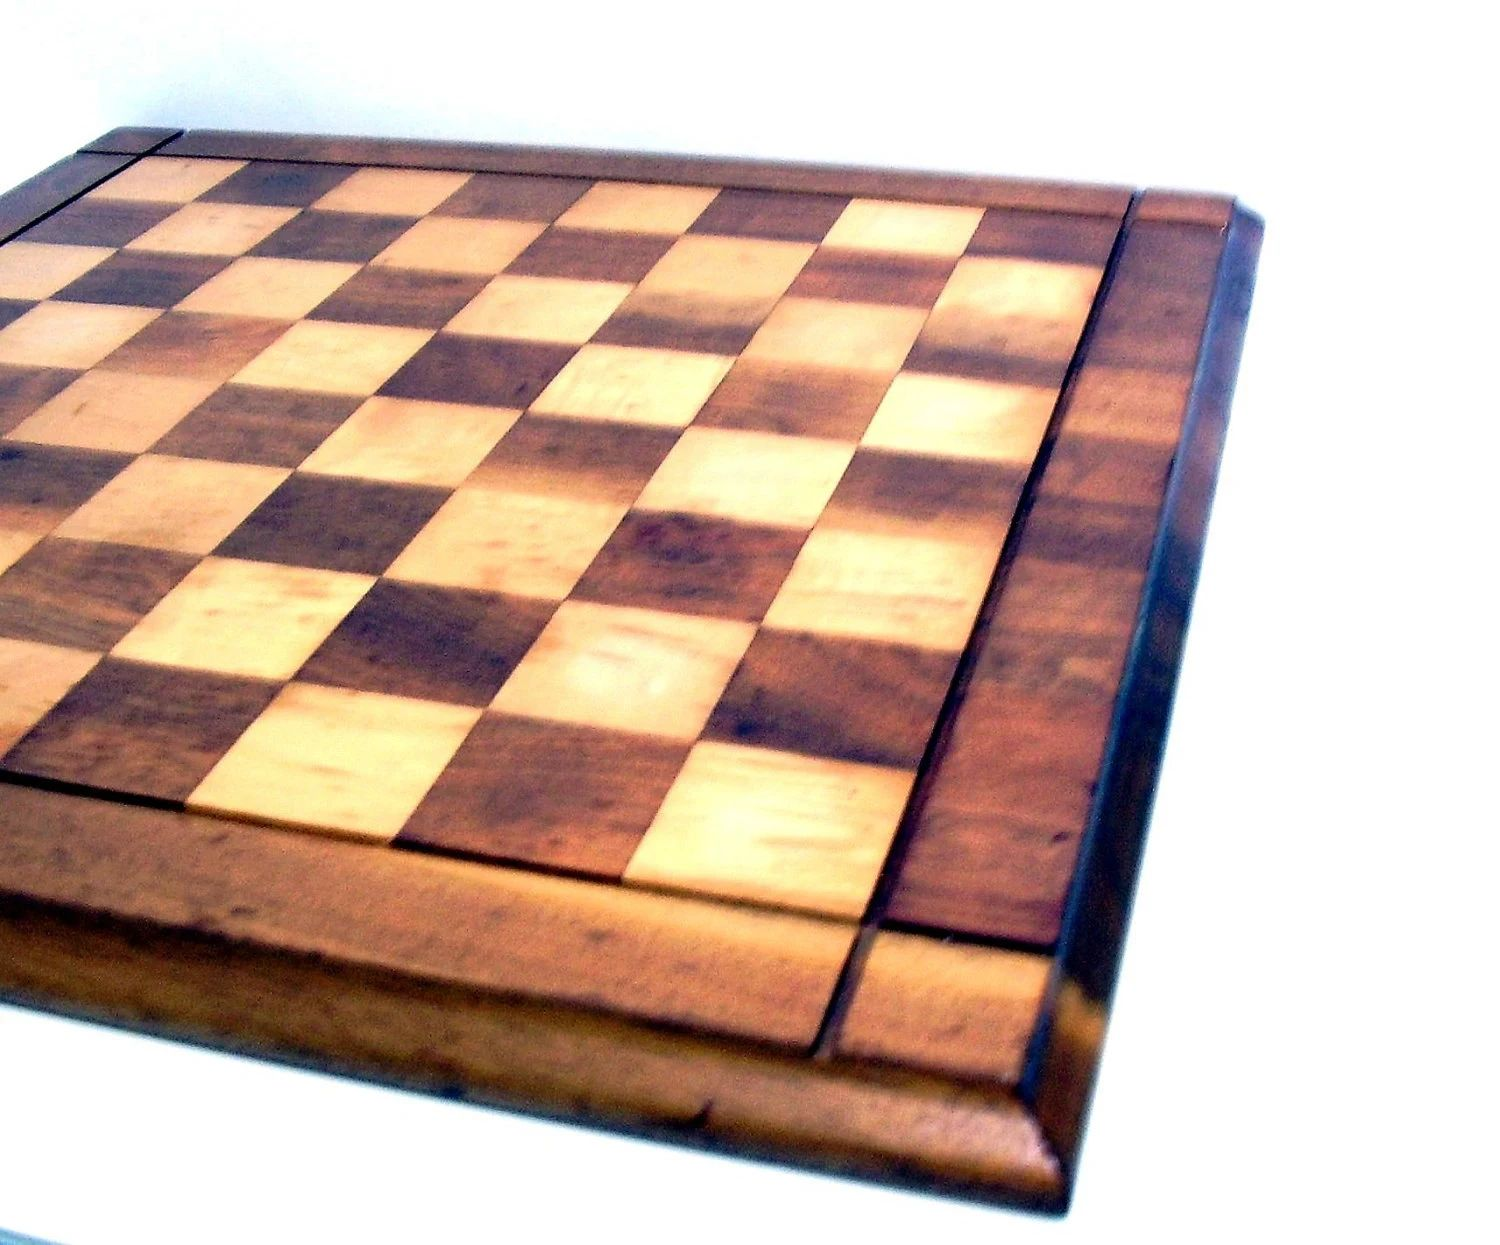 Vintage wooden checkerboard checkers chess game by